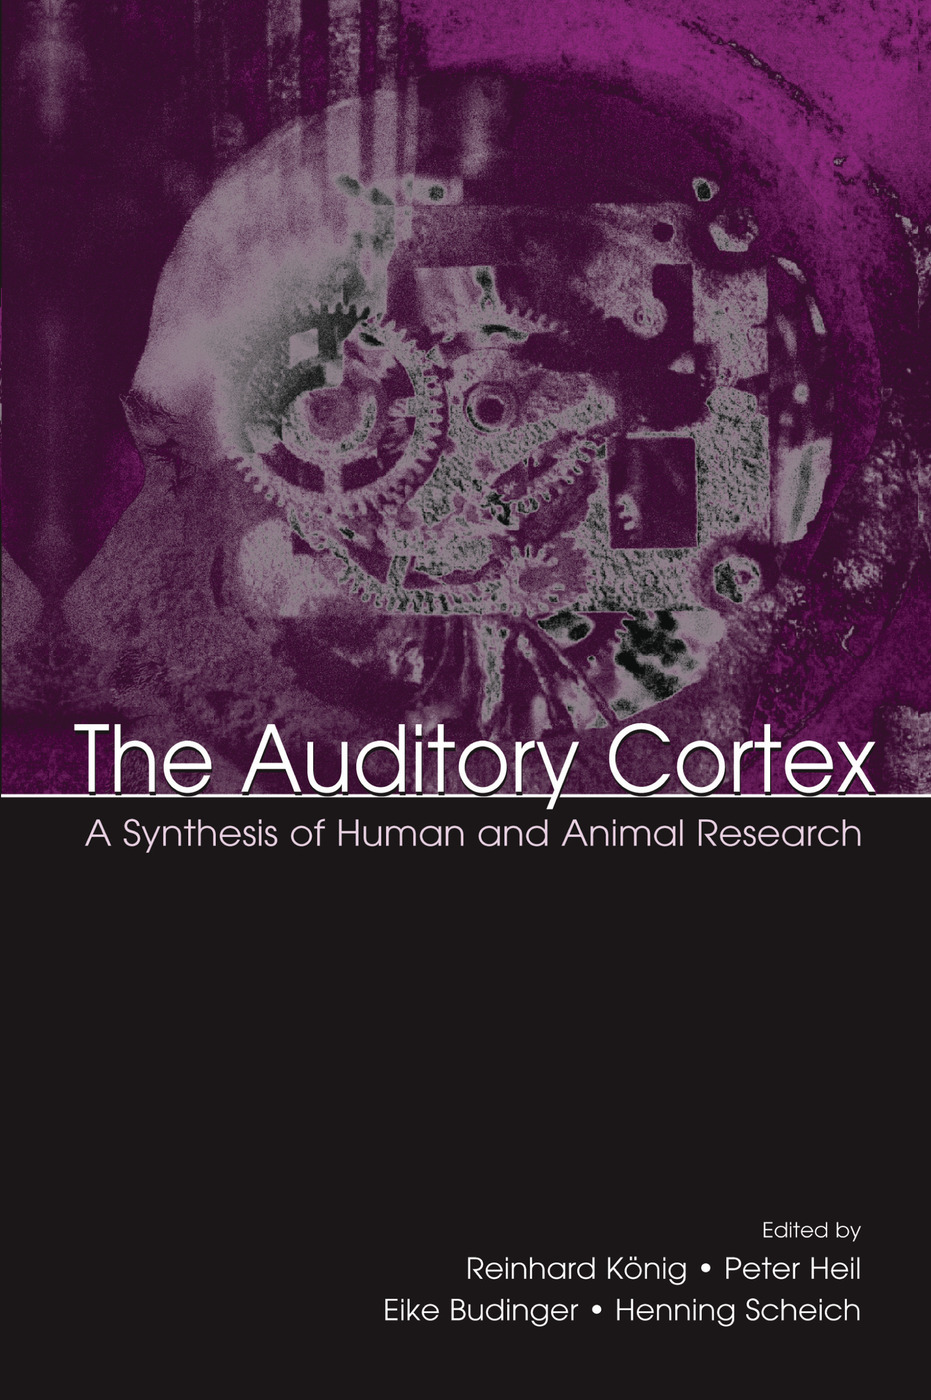 The Auditory Cortex: A Synthesis of Human and Animal Research book cover